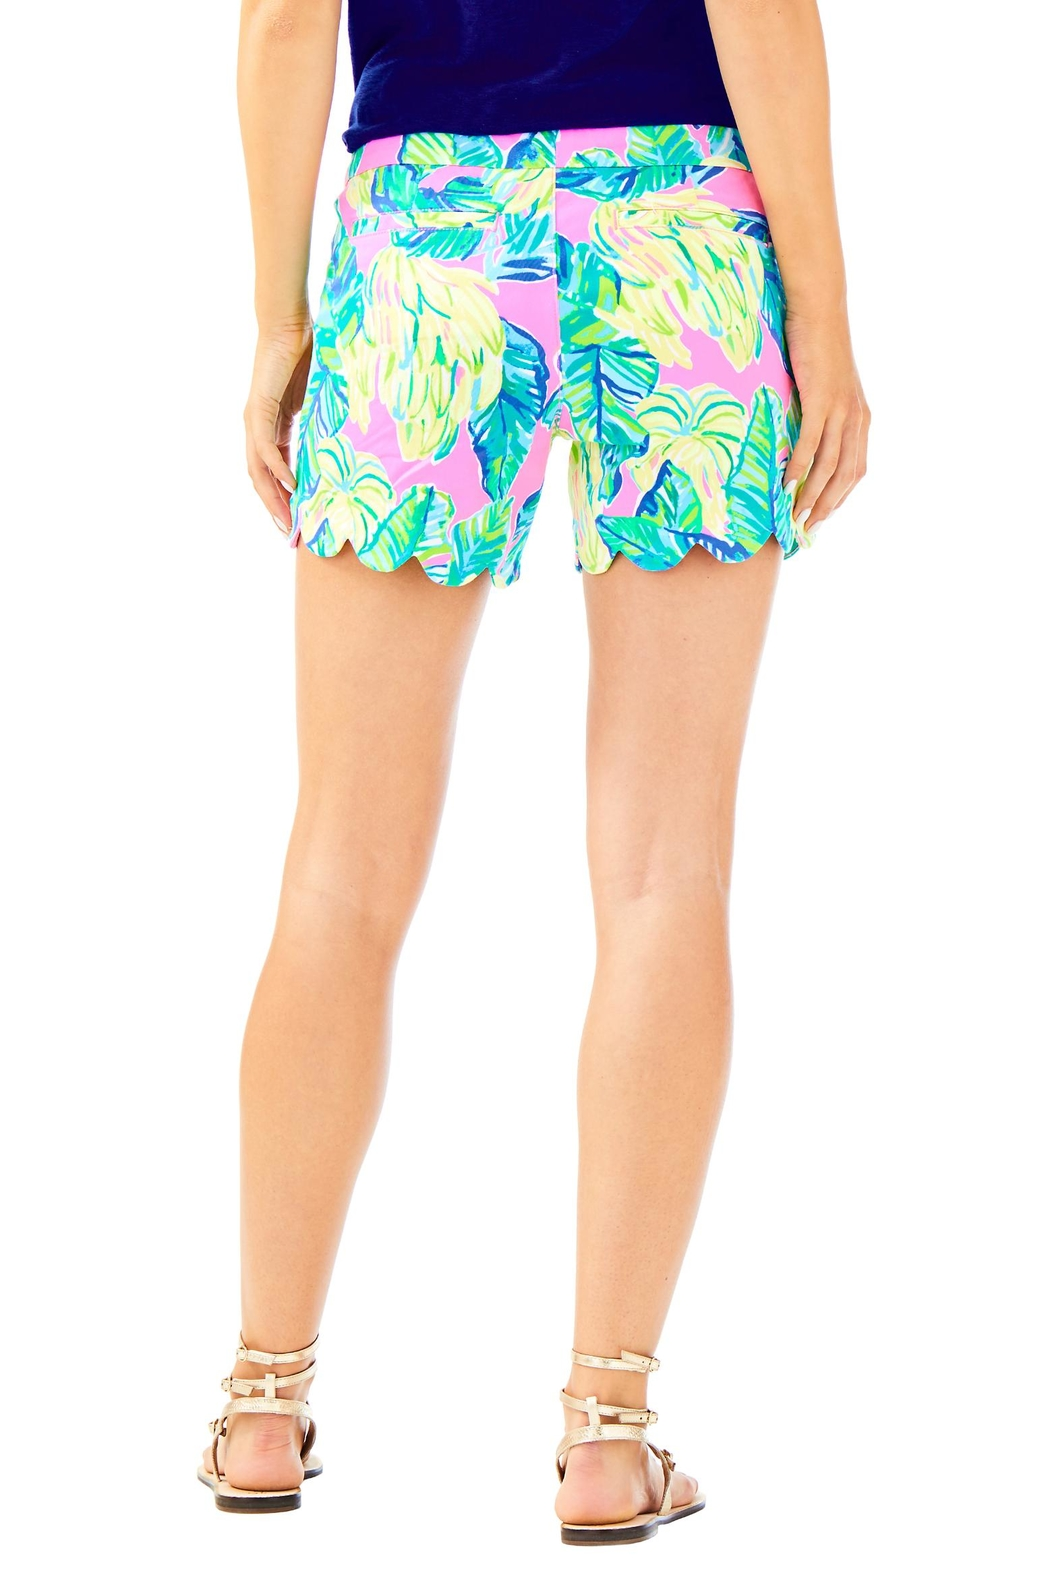 Lilly Pulitzer Buttercup Twill Short - Front Full Image